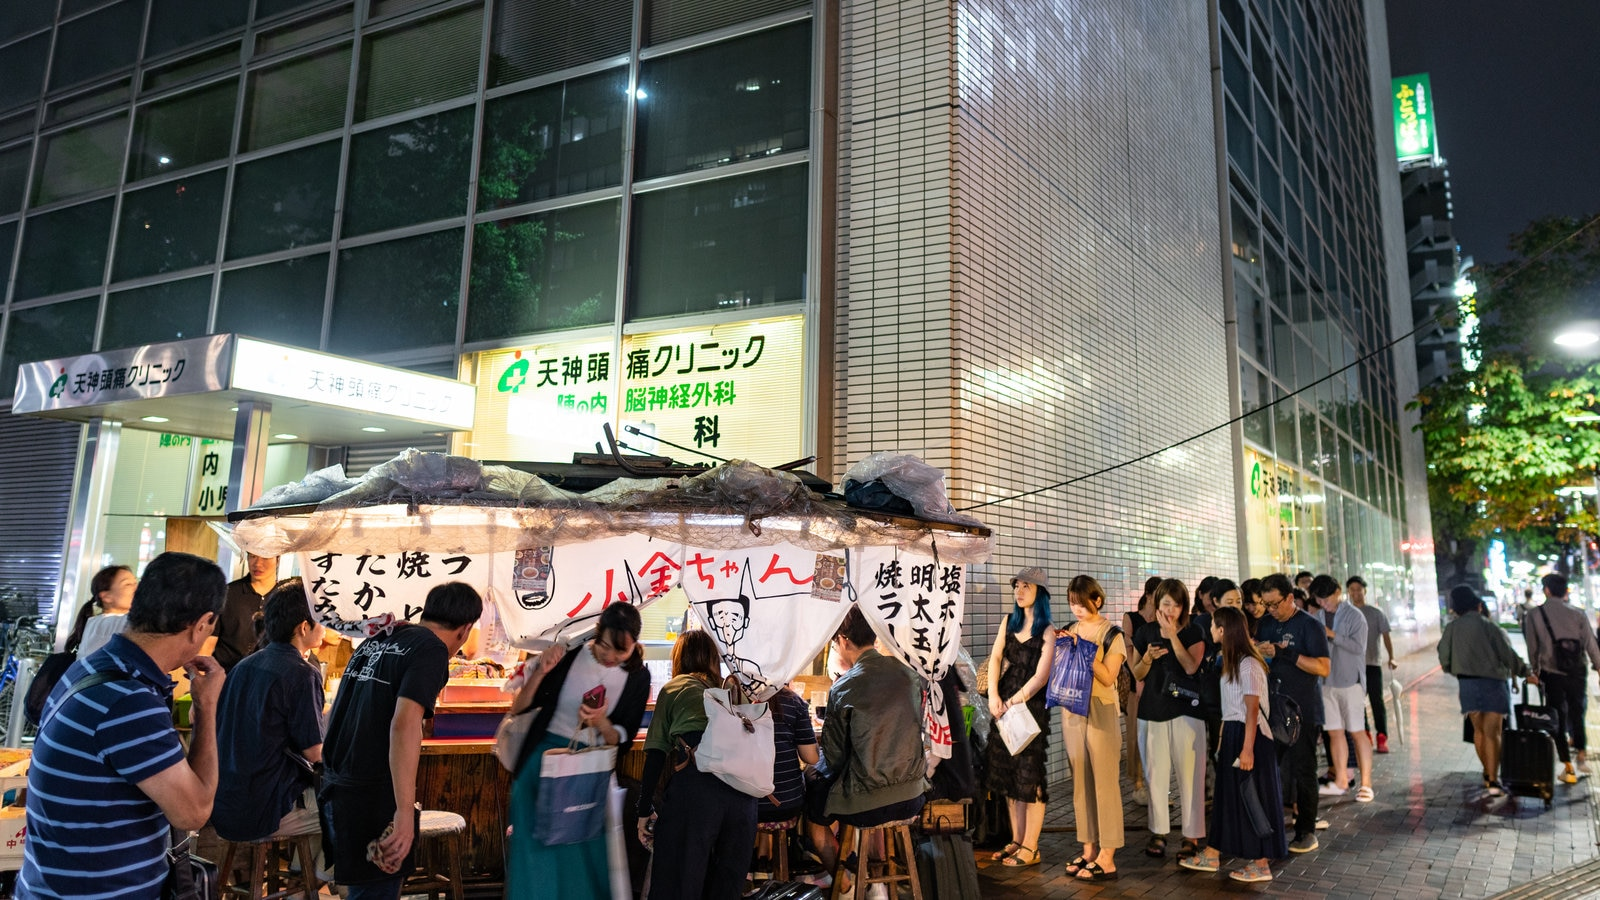 Tenjin which includes street scenes, night scenes and a city